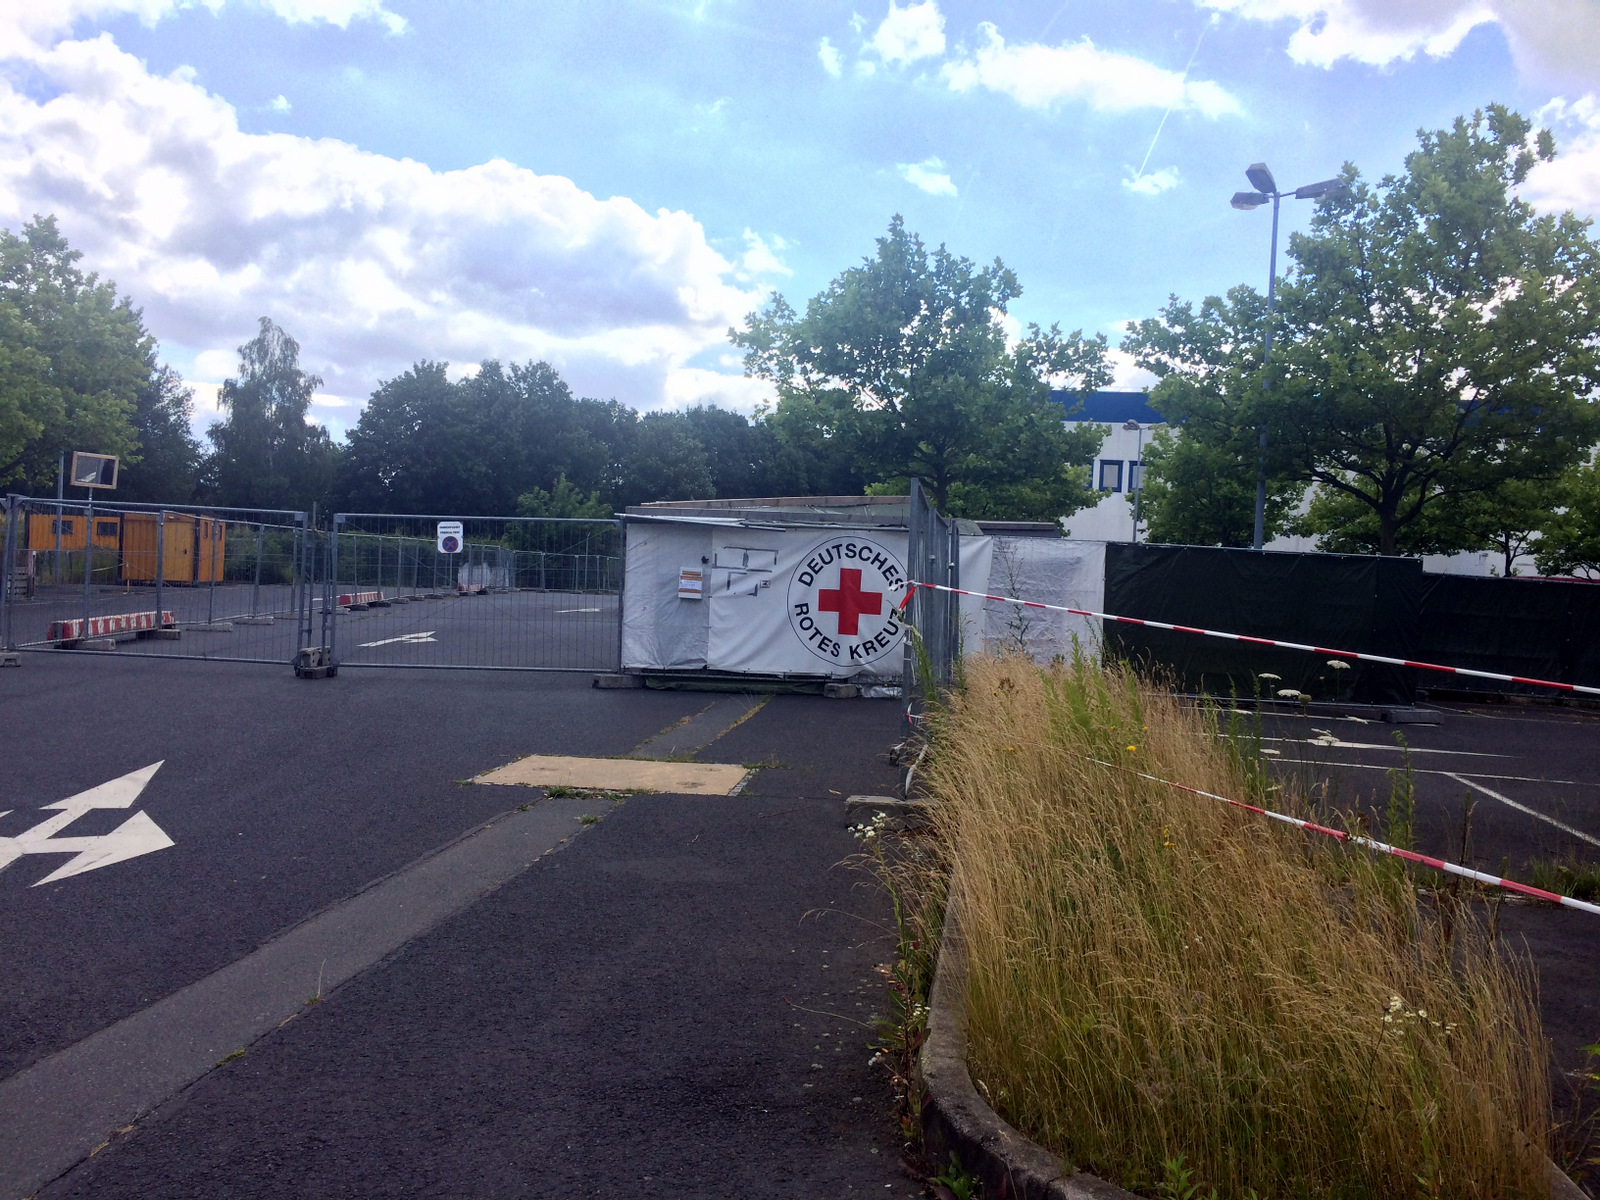 Like many large camps, this one has been closed in recent months as the flow of refugees has been nearly-halted by closed borders.  But late last year, this camp outside of Dresden, Germany was attacked with rocks and gunfire, July 7, 2016.  (H. Murd...